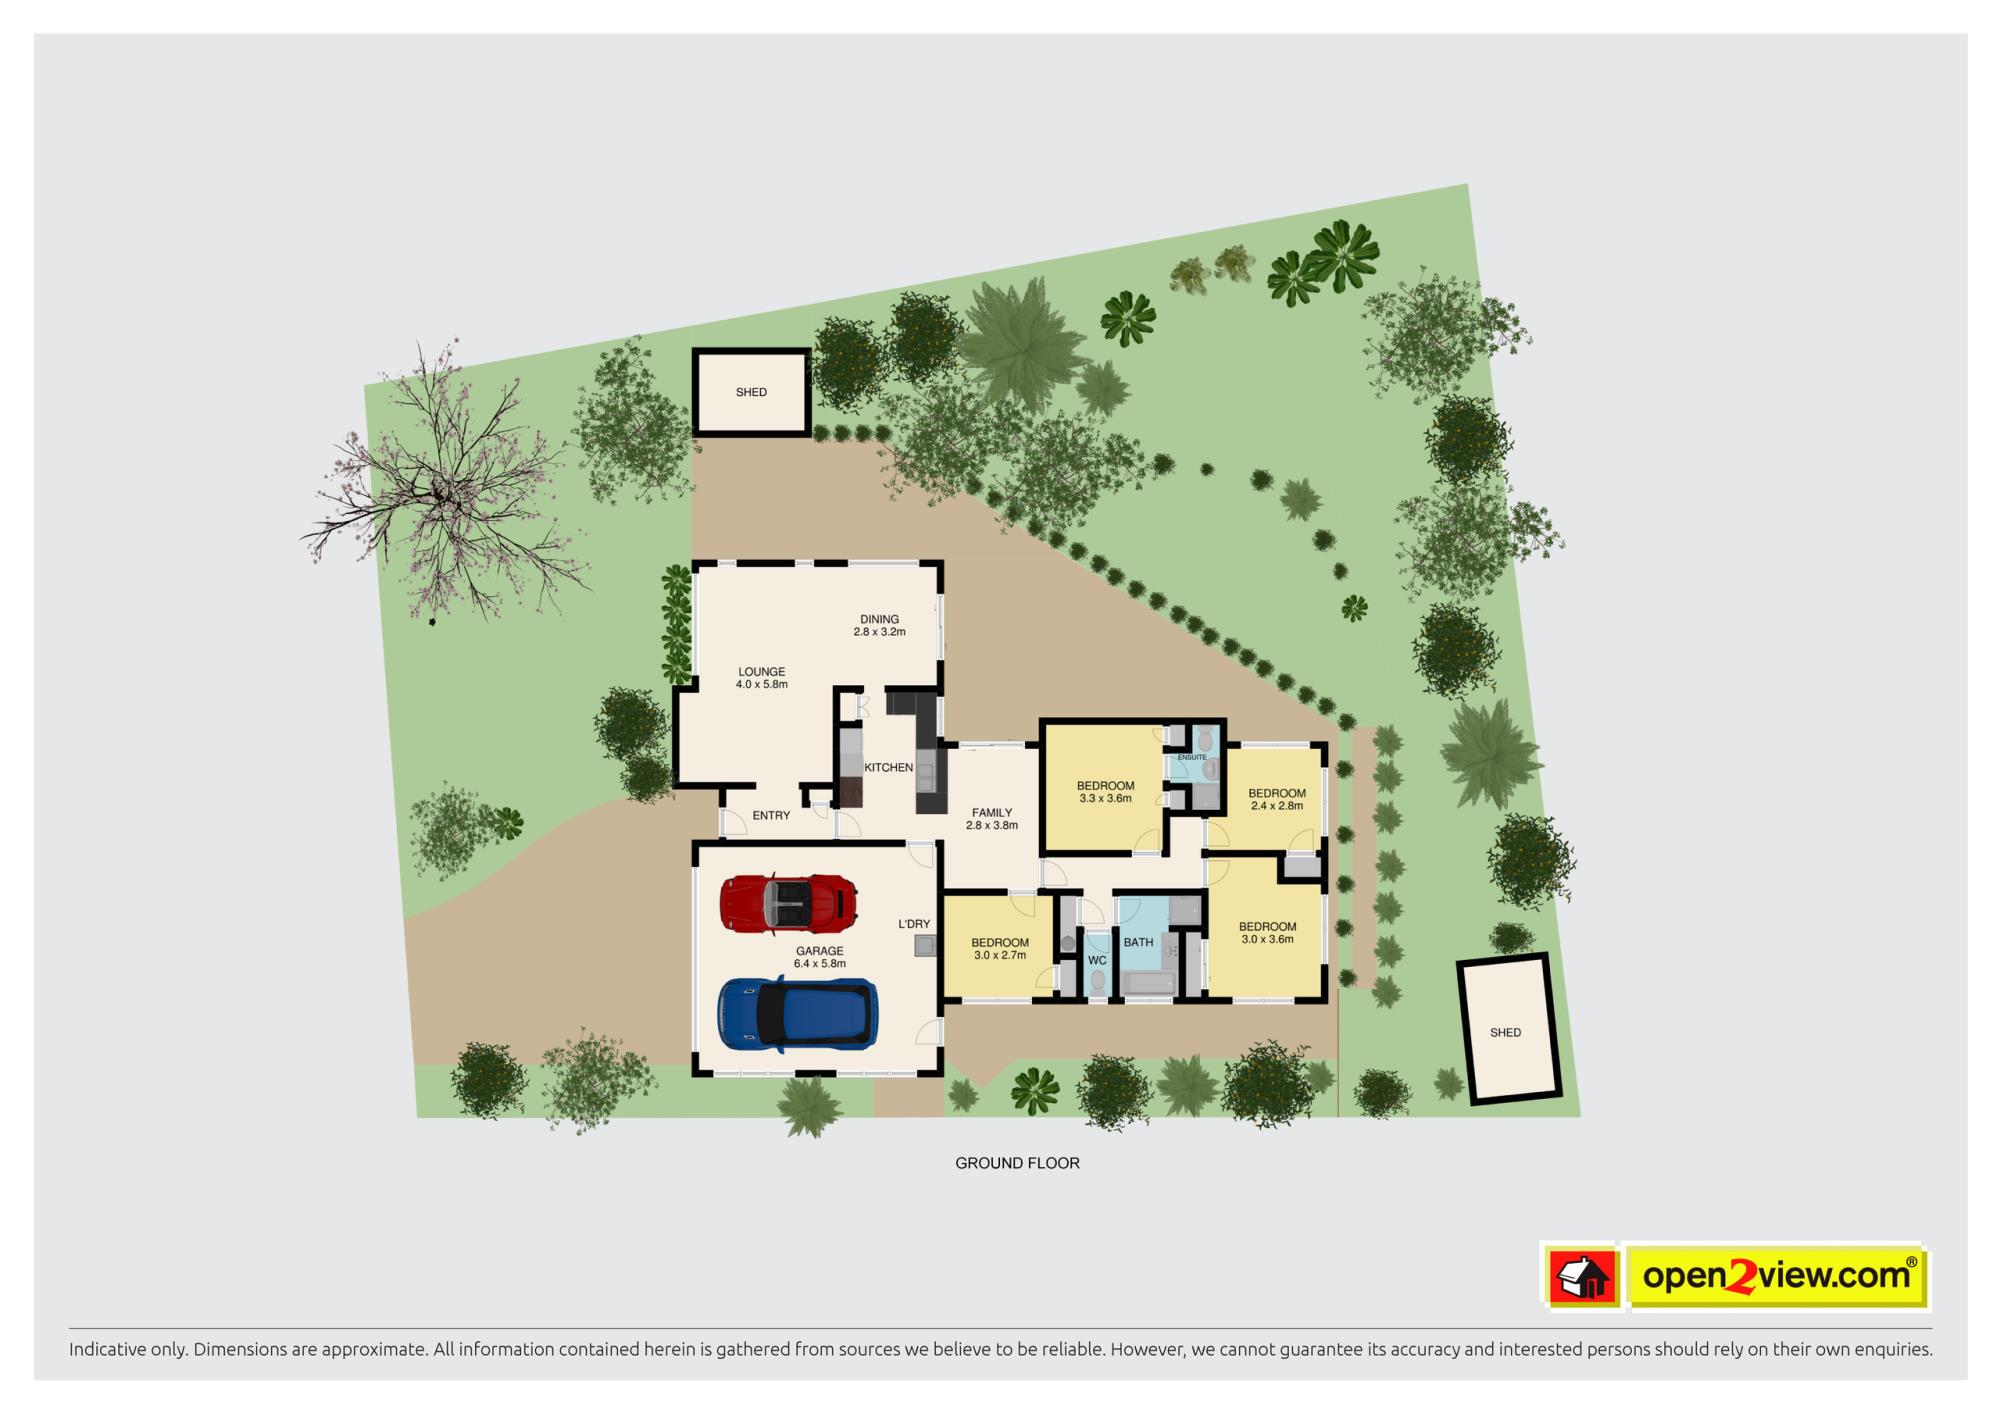 13 Voltaire Court Botany Downsproperty floorplan image